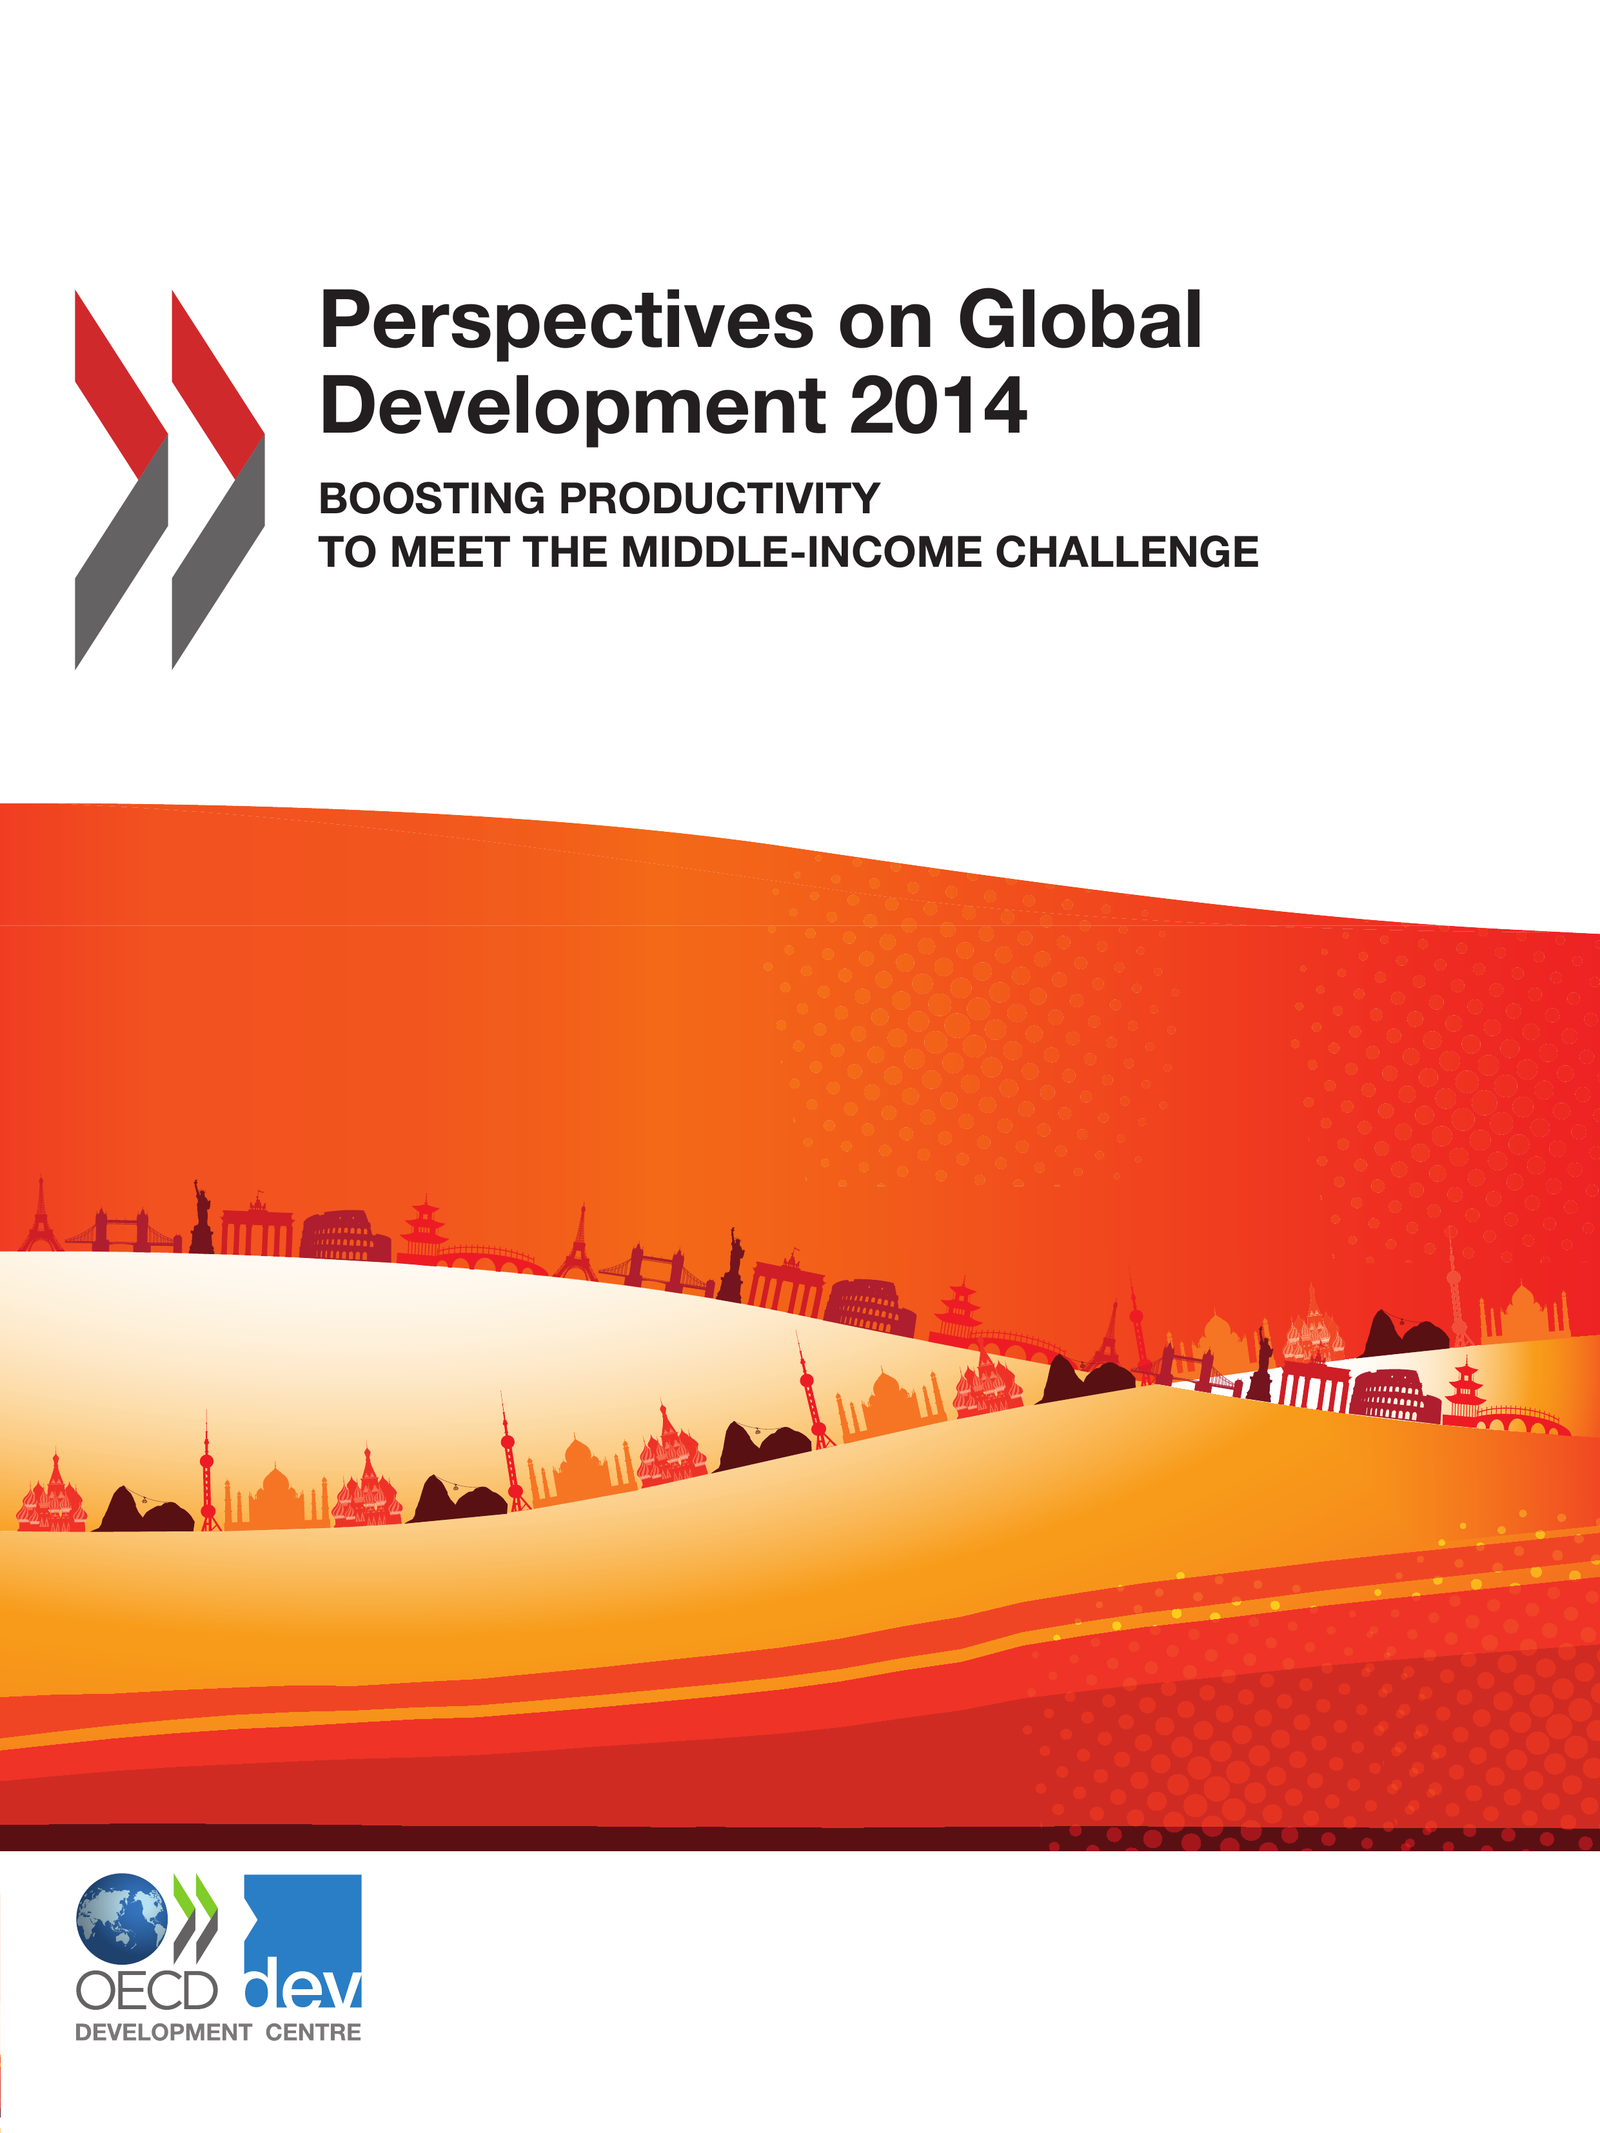 Perspectives on Global Development 2014